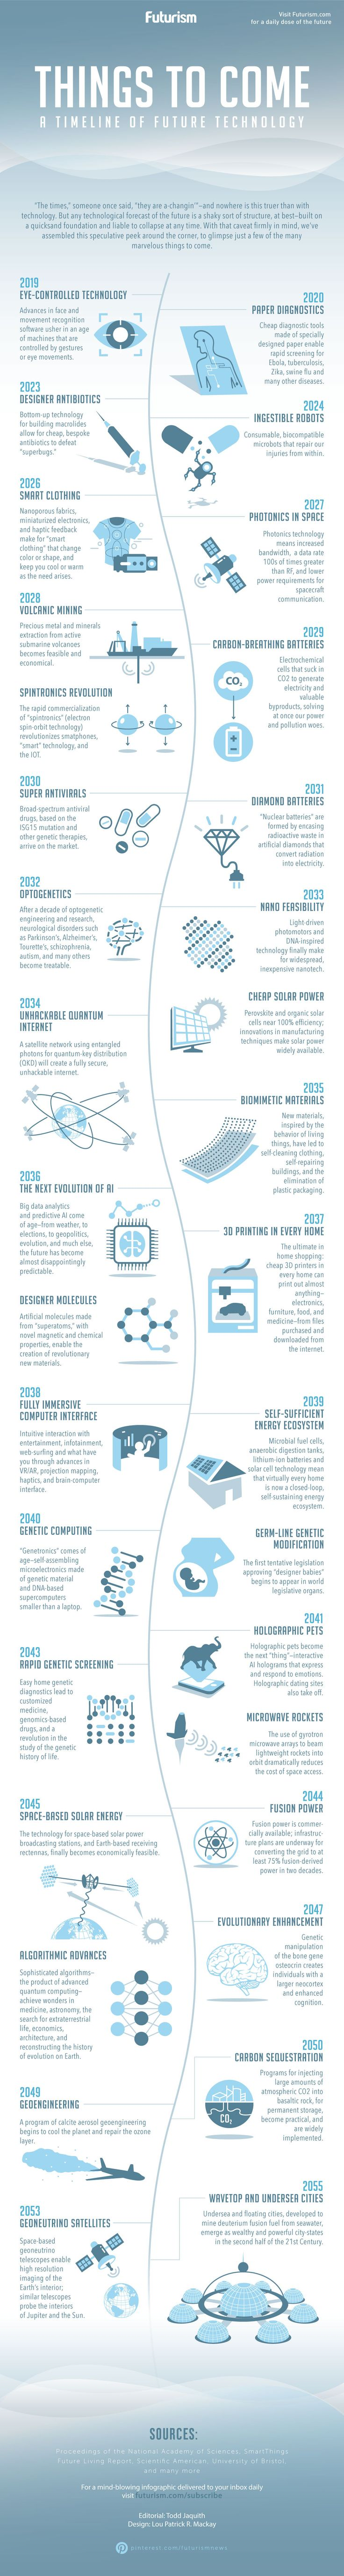 Future technology predictions infographic